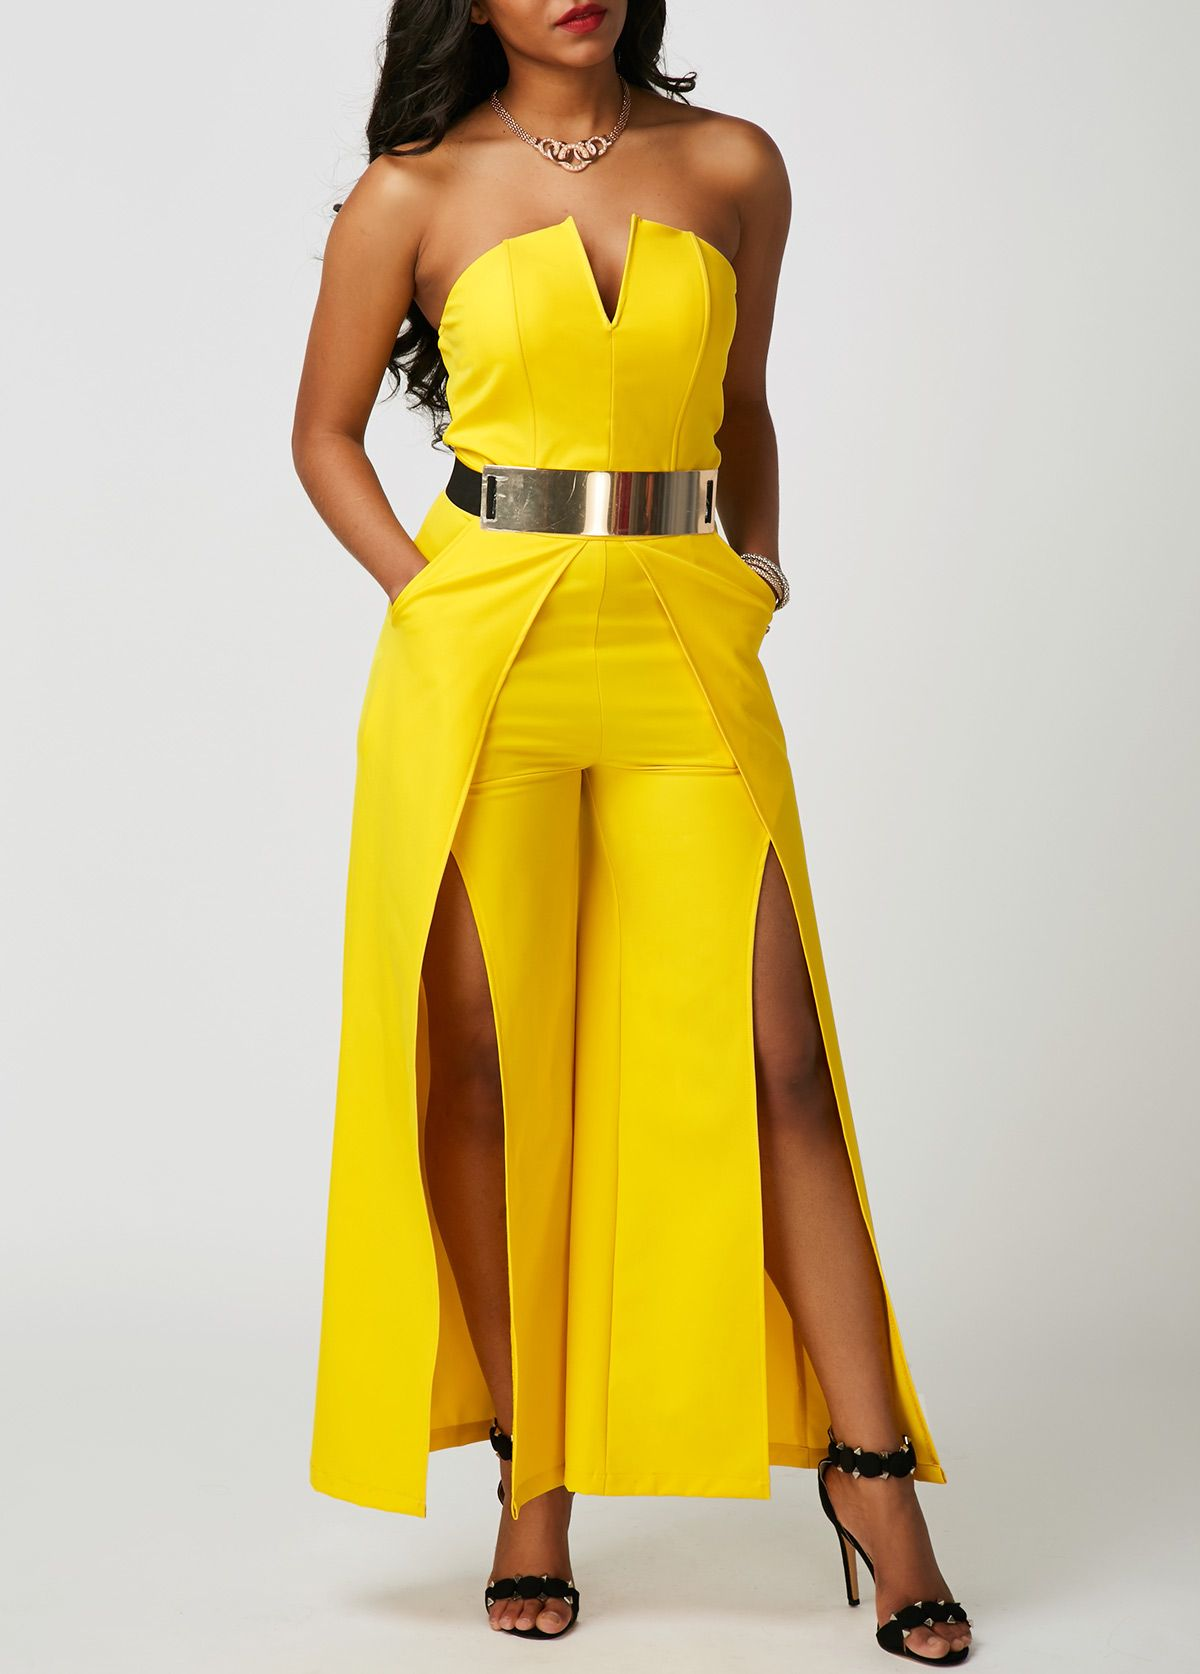 Yellow Strapless High Waist Overlay Embellished Jumpsuit | Rosewe.com - USD $31.74 | Virtual ...